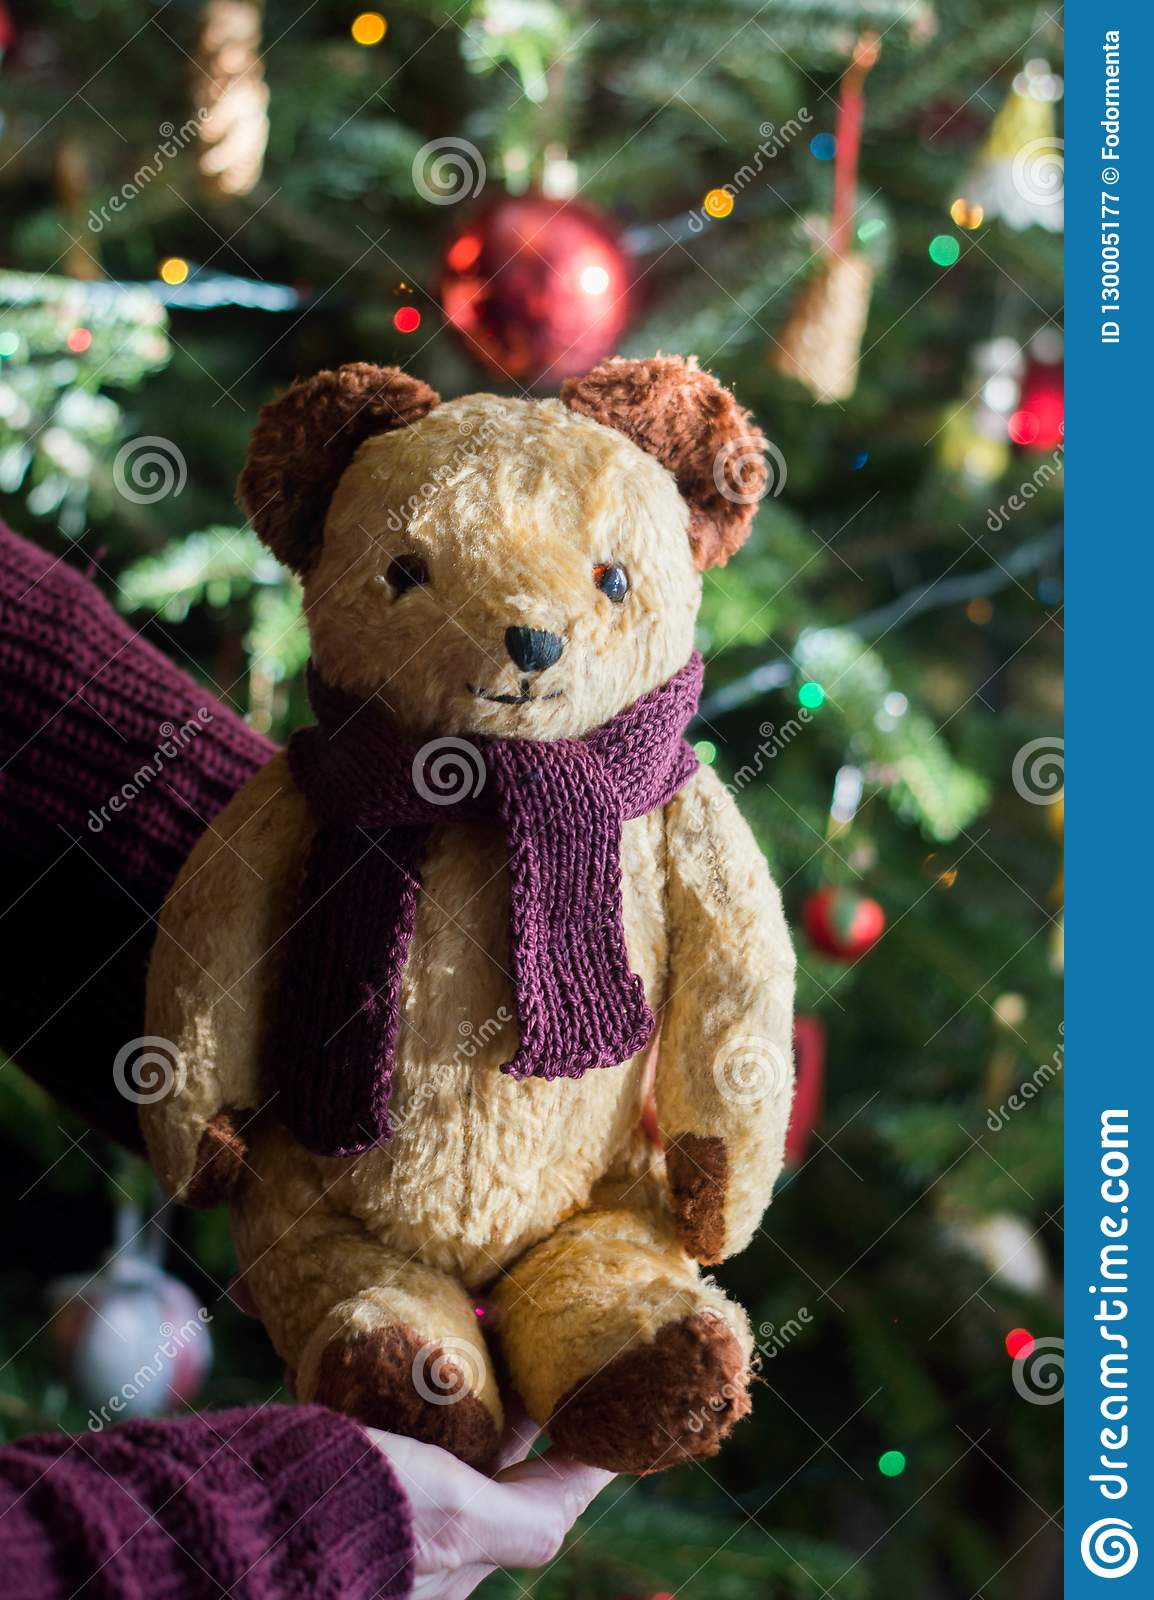 49b01c11de Child hold in hand a vintage stuffed teddy bear toy - its a christmas  present. In the background a decorated christmas tree with light garlands  and glass ...